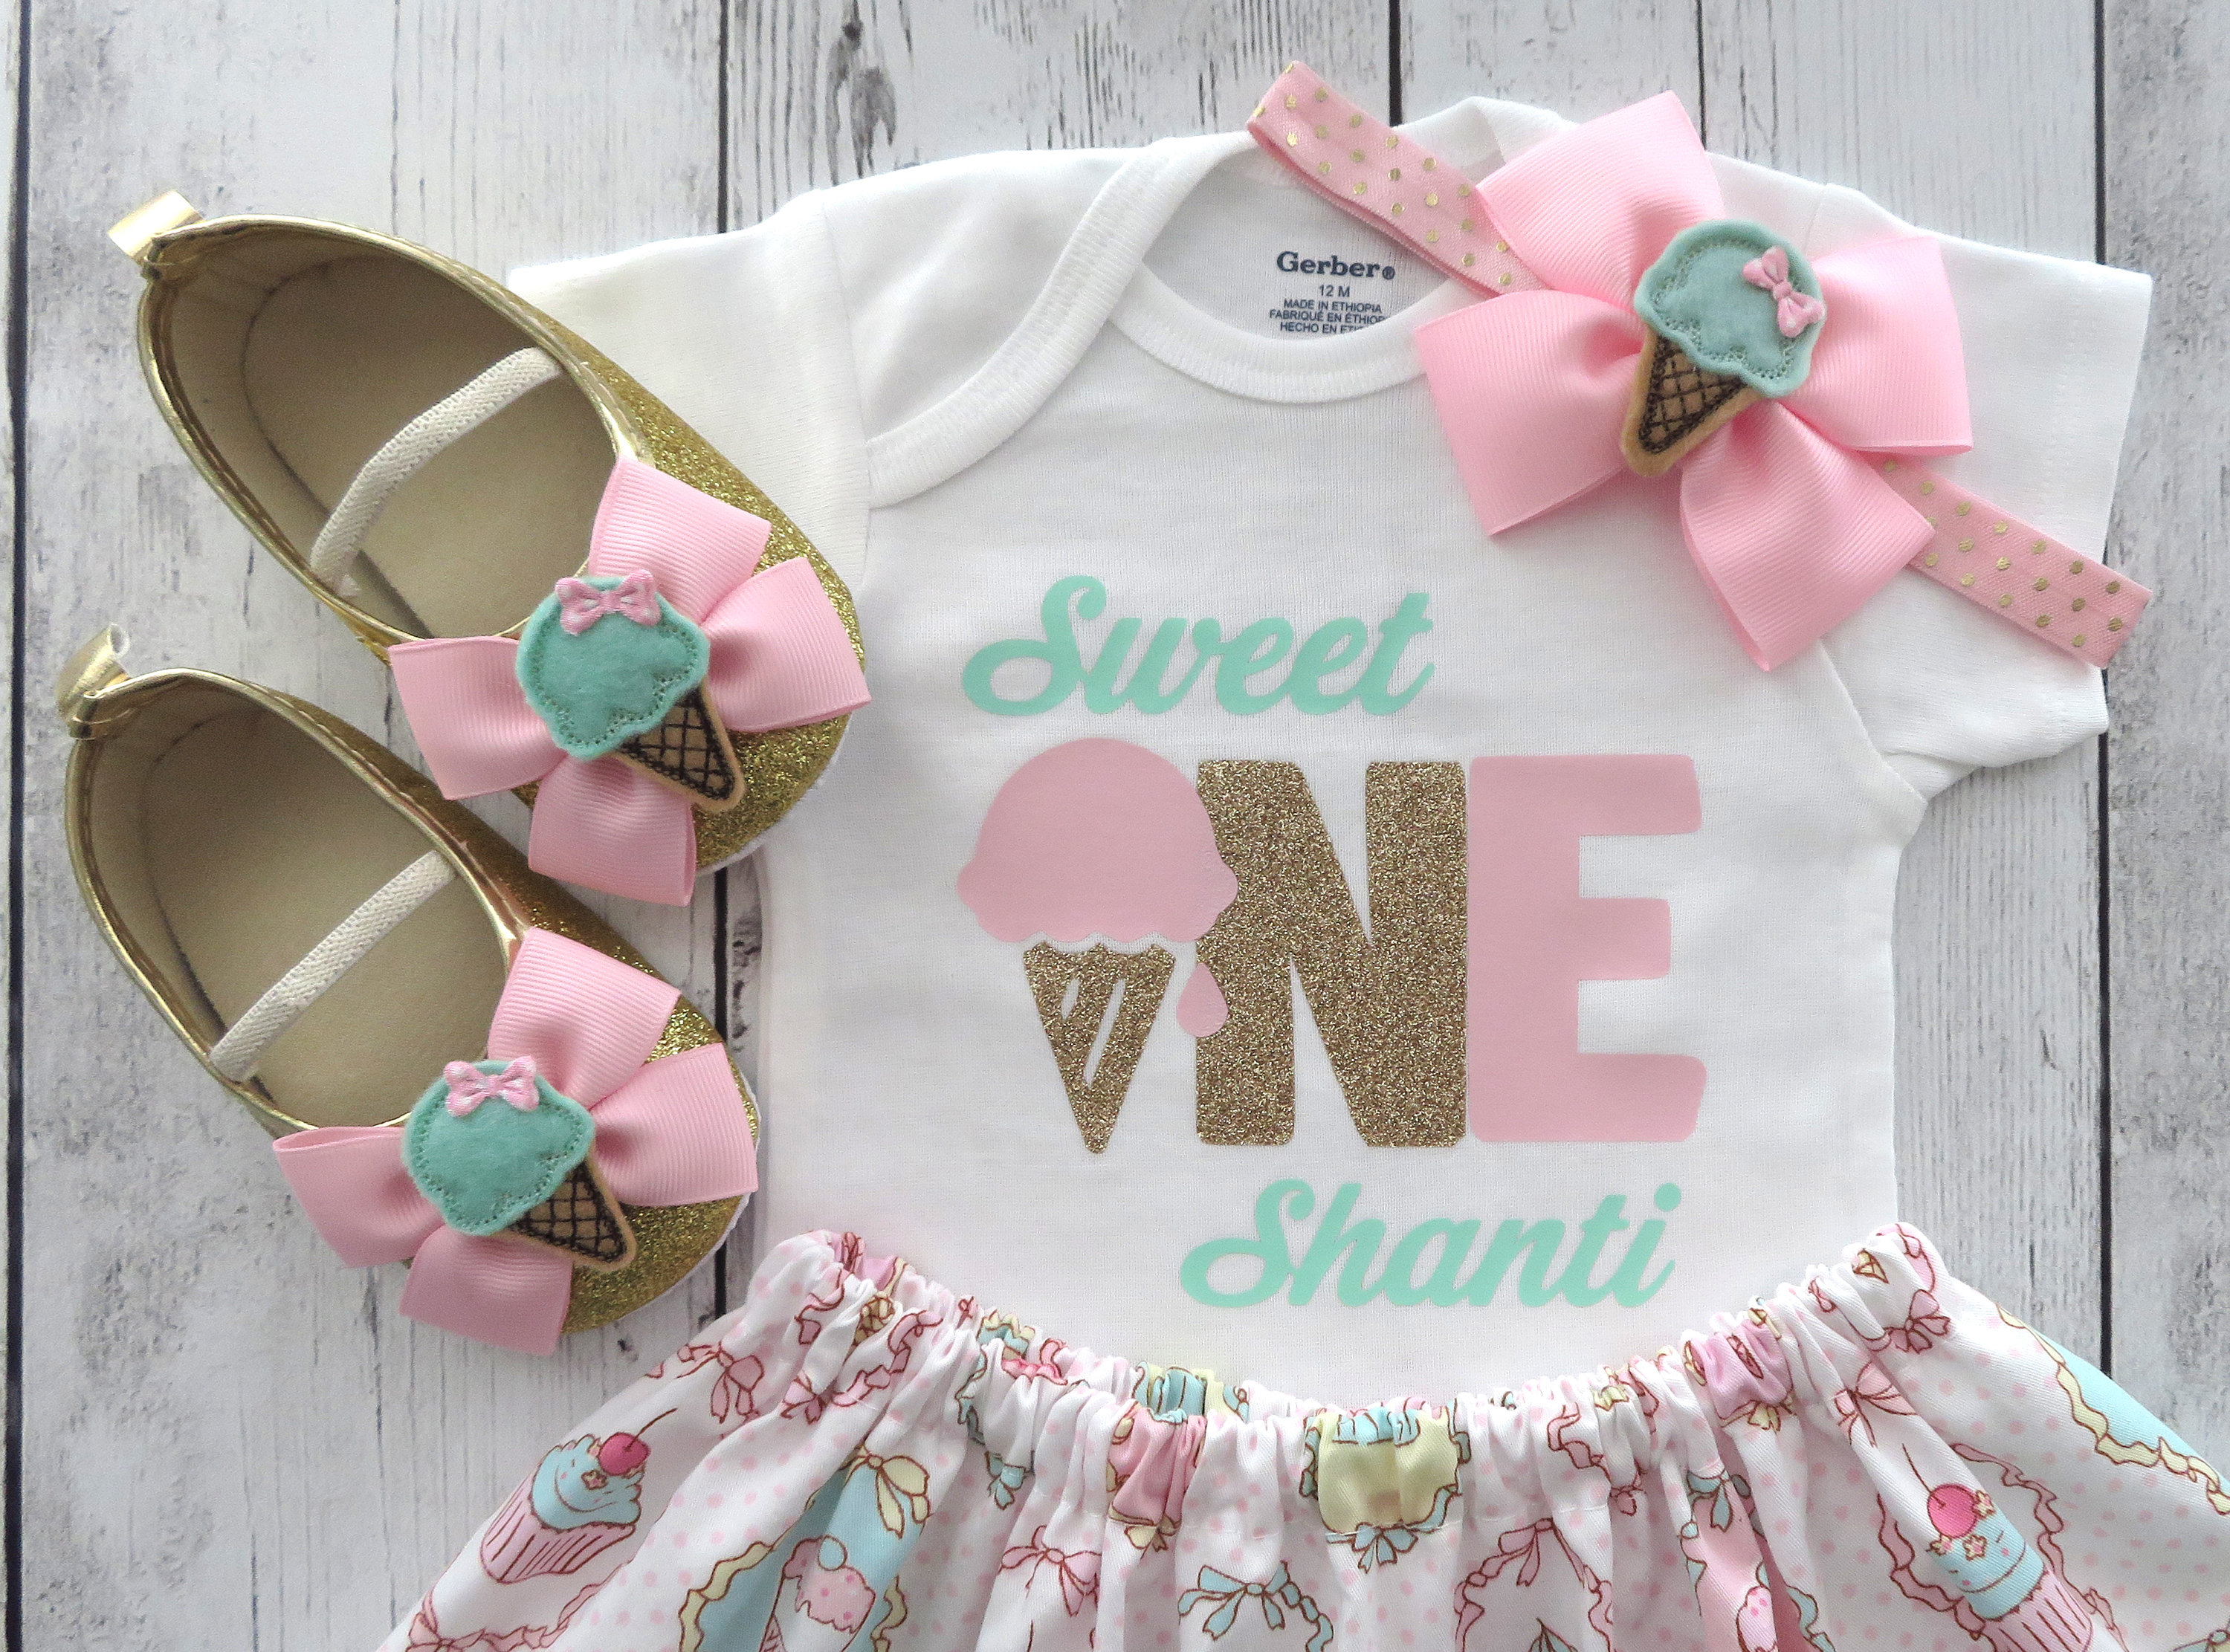 Sweet One First Birthday Outfit in pink and gold - ice cream birthday girl, headband, ice cream cone, ice cream parlor, vintage ice cream